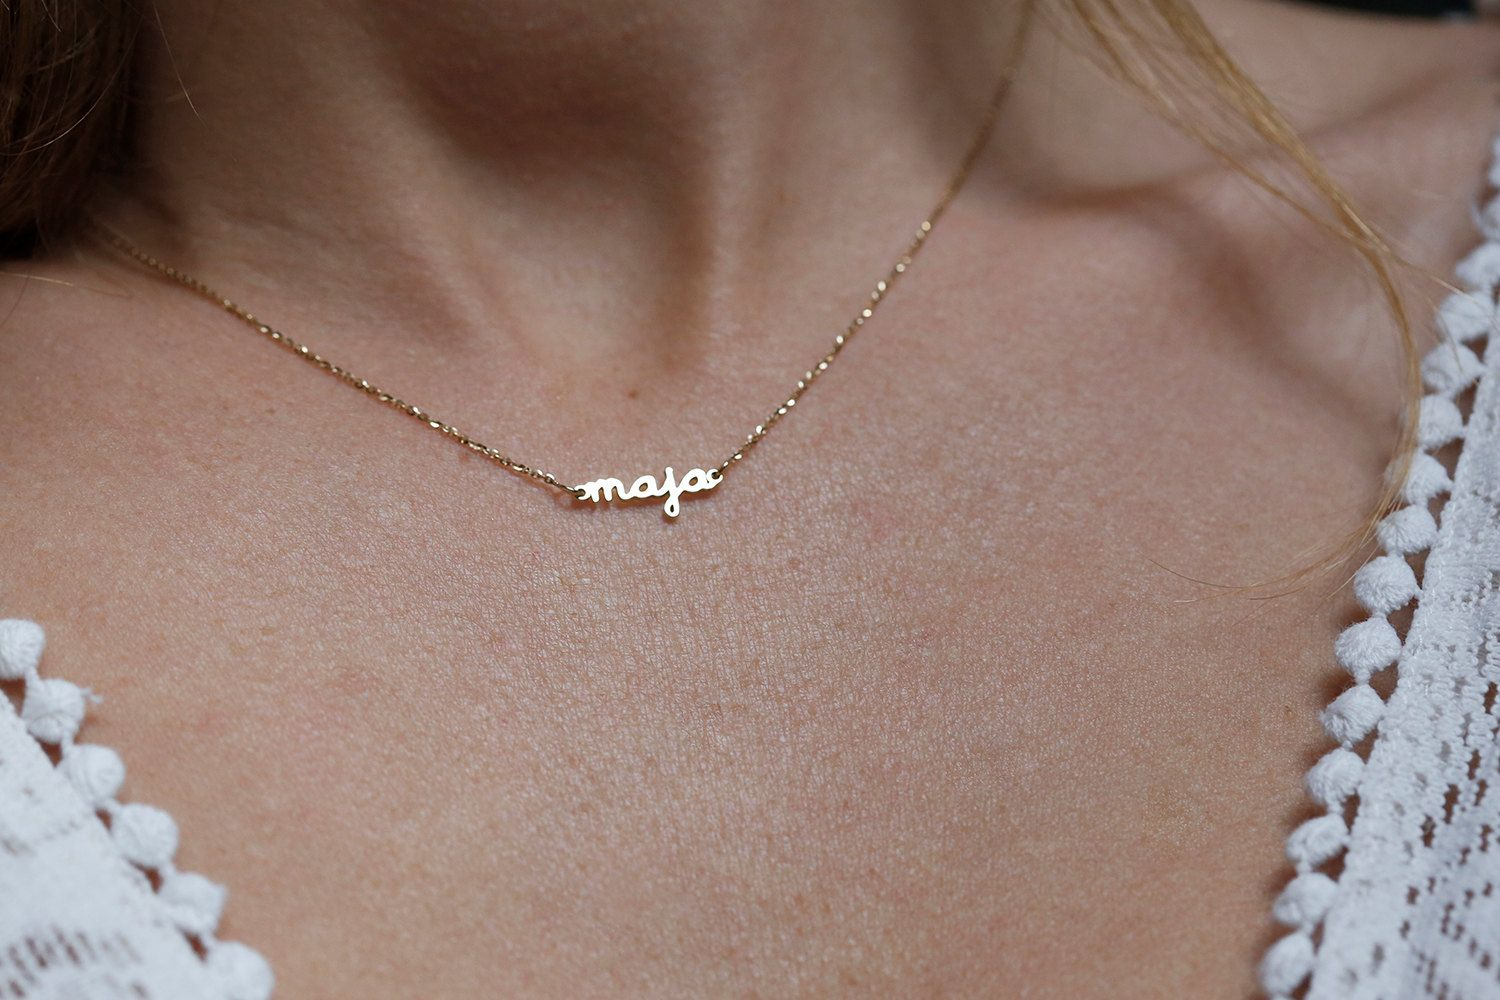 Extra tiny name necklace 14k gold necklace solid gold name necklace extra tiny name necklace 14k gold necklace solid gold name necklace aloadofball Image collections